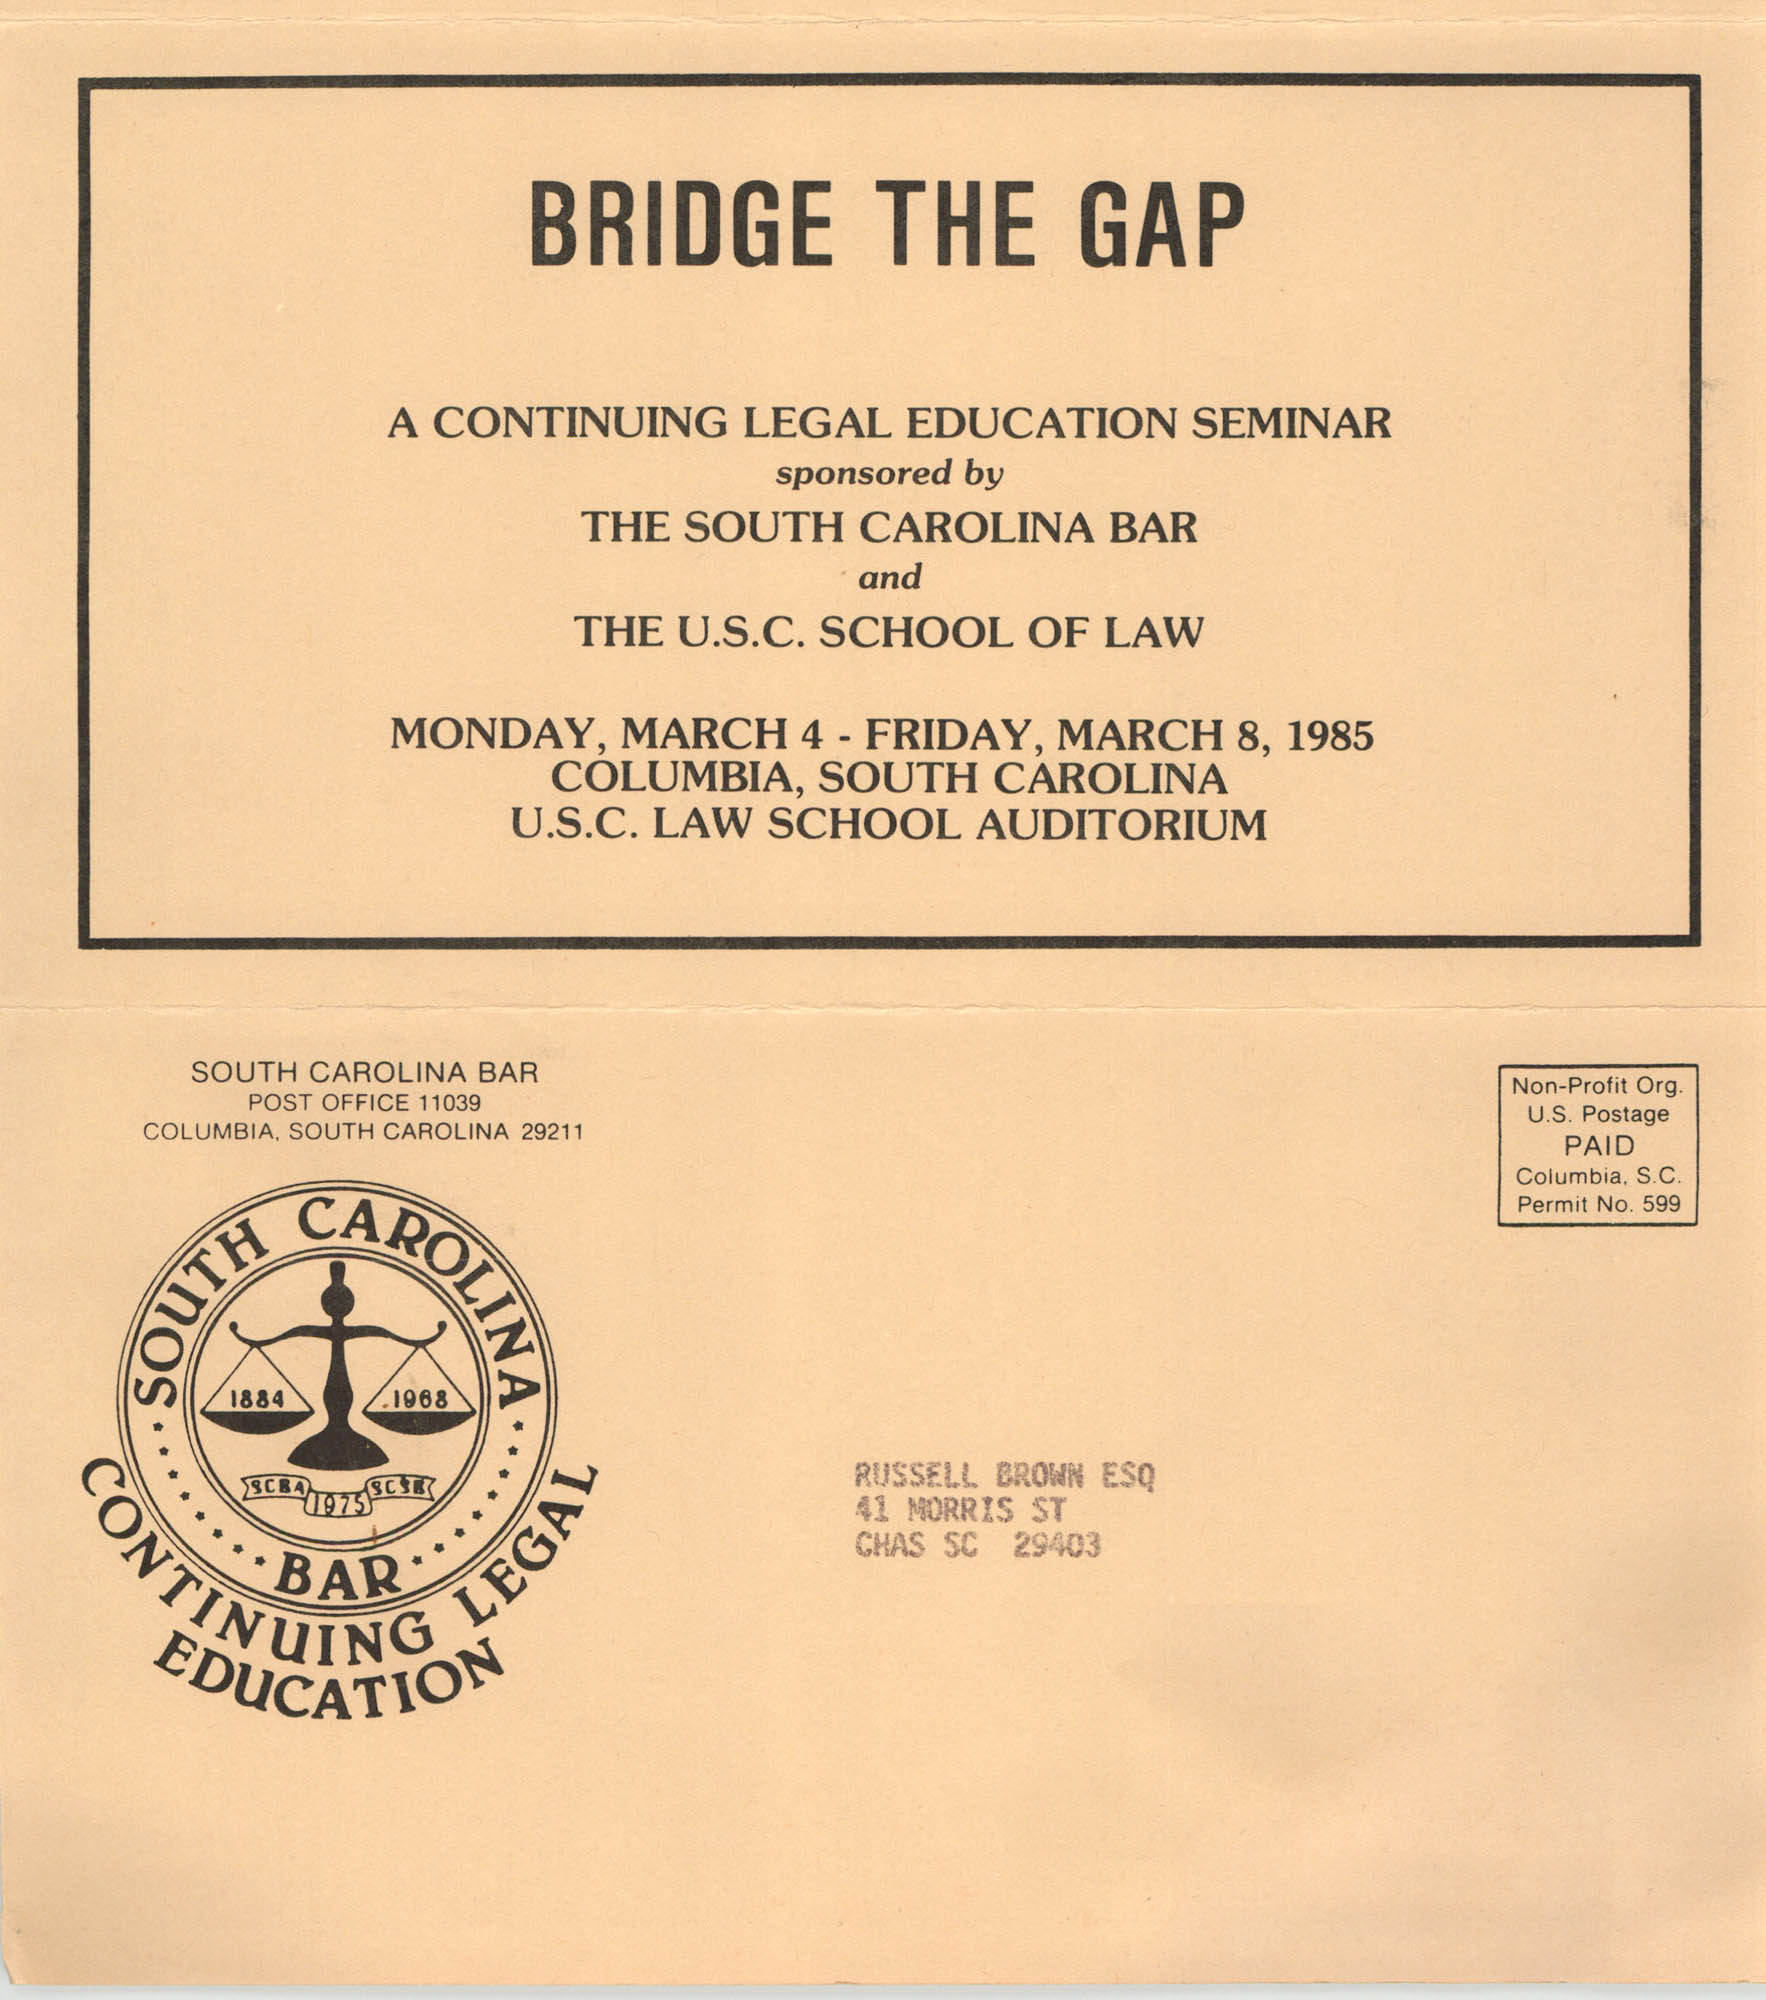 Bridge the Gap, Continuing Legal Education Seminar Pamphlet, March 4-8, 1985, Russell Brown